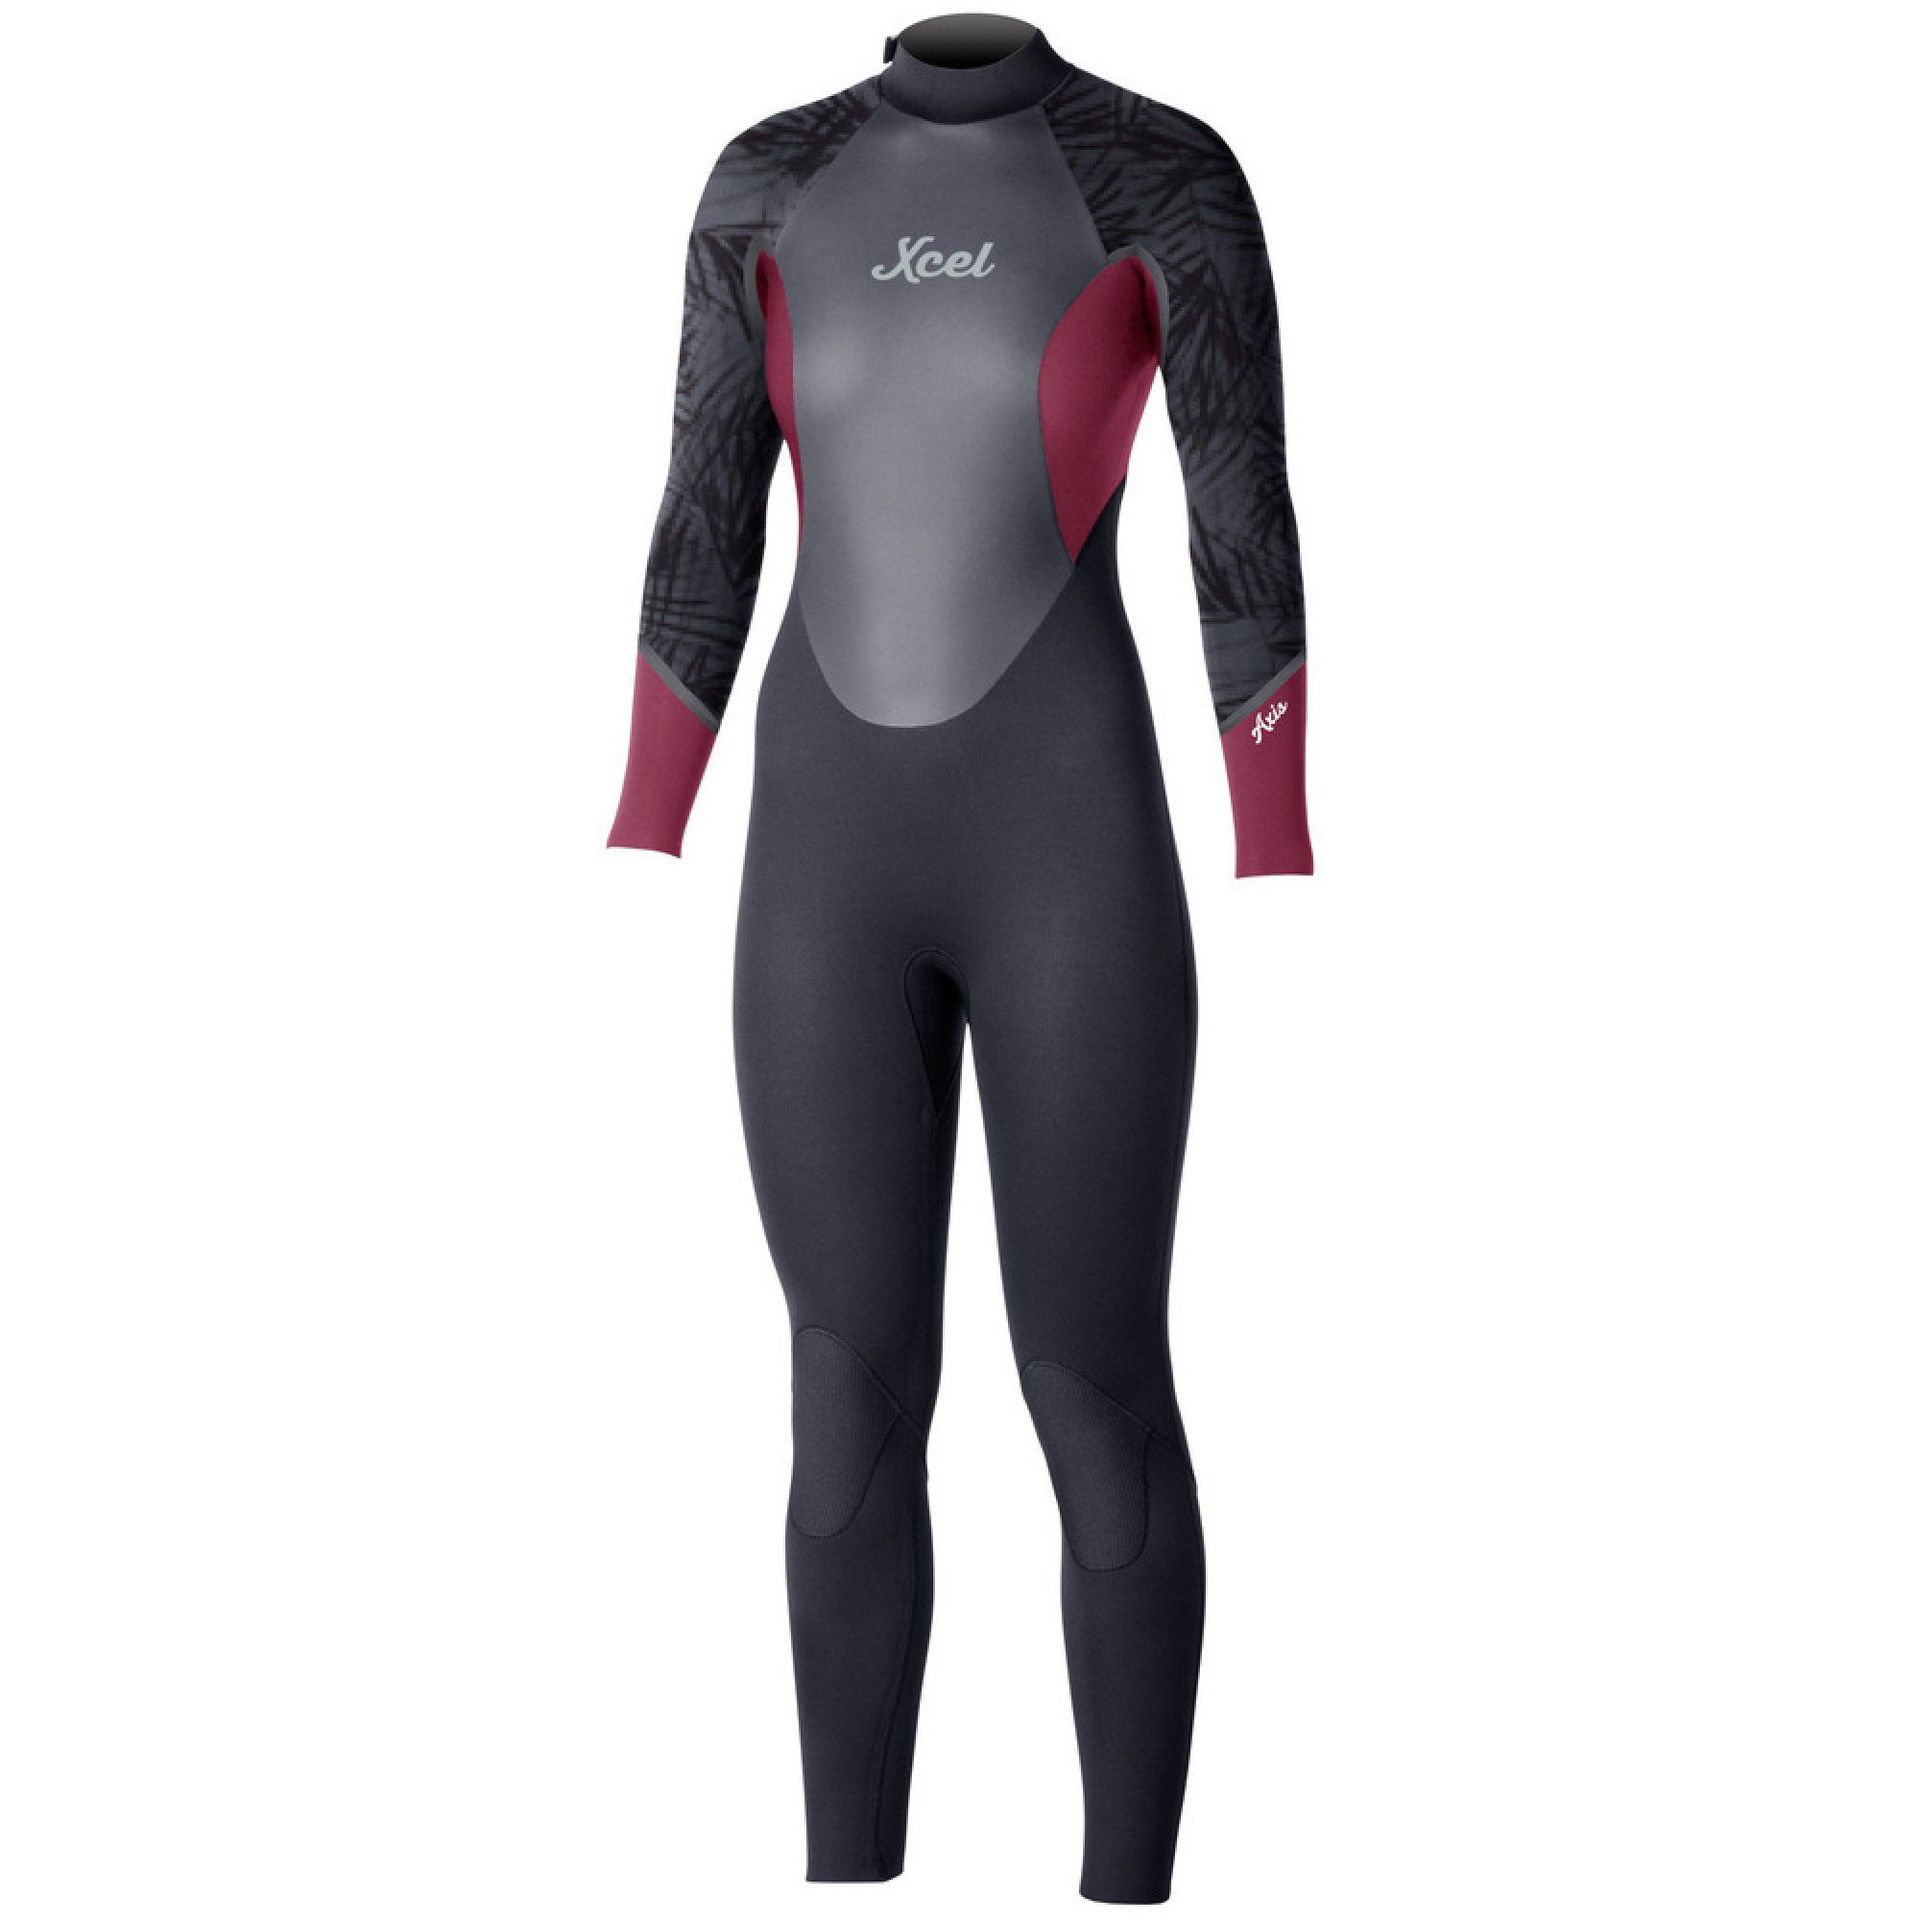 PIANKA NEOPRENOWA XCEL WOMENS AXIS FULLSUIT 4|3 MM BLACK MERLOT PRINT